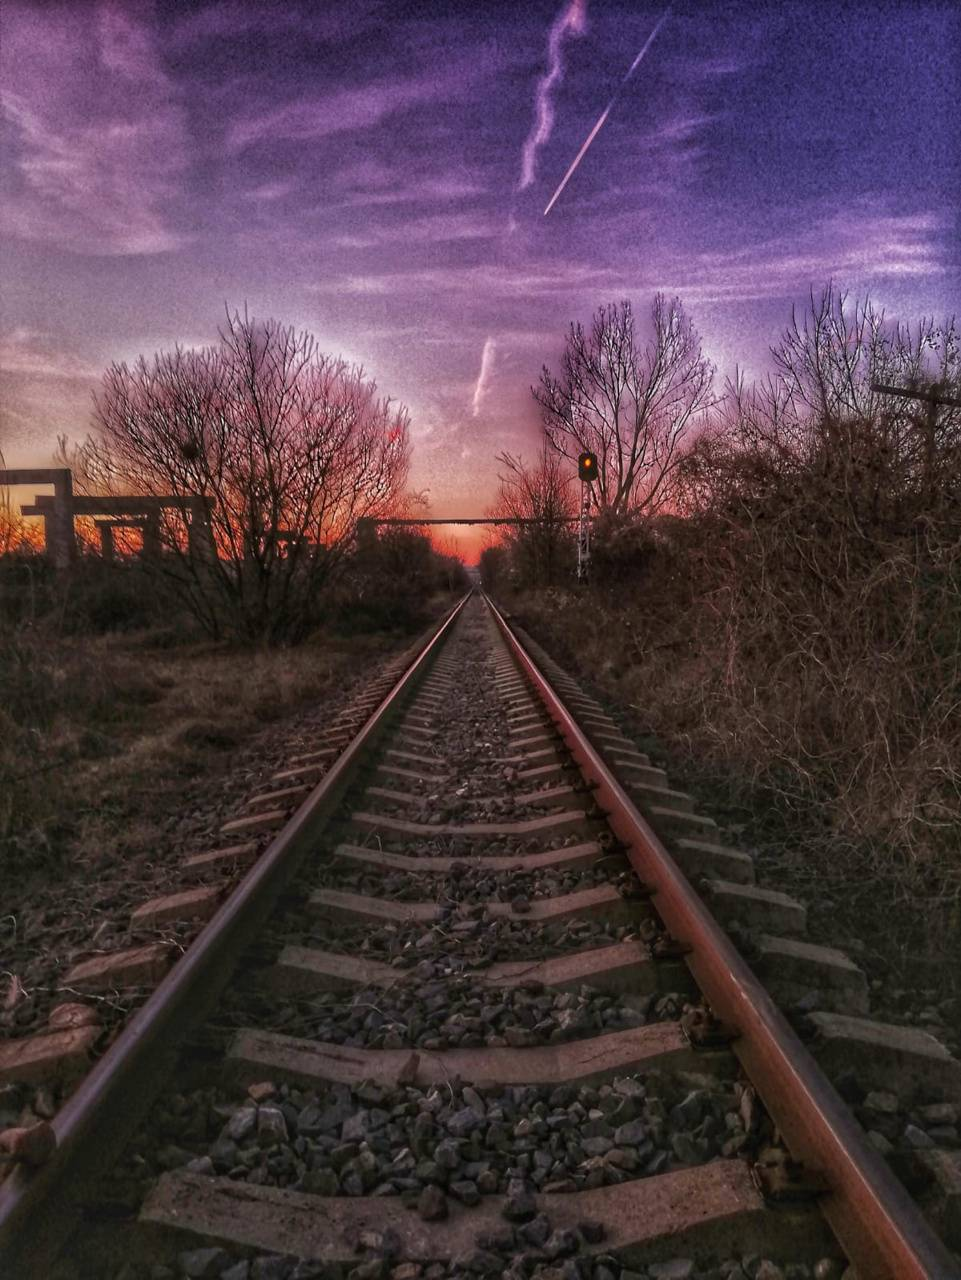 Sky and Traintracks